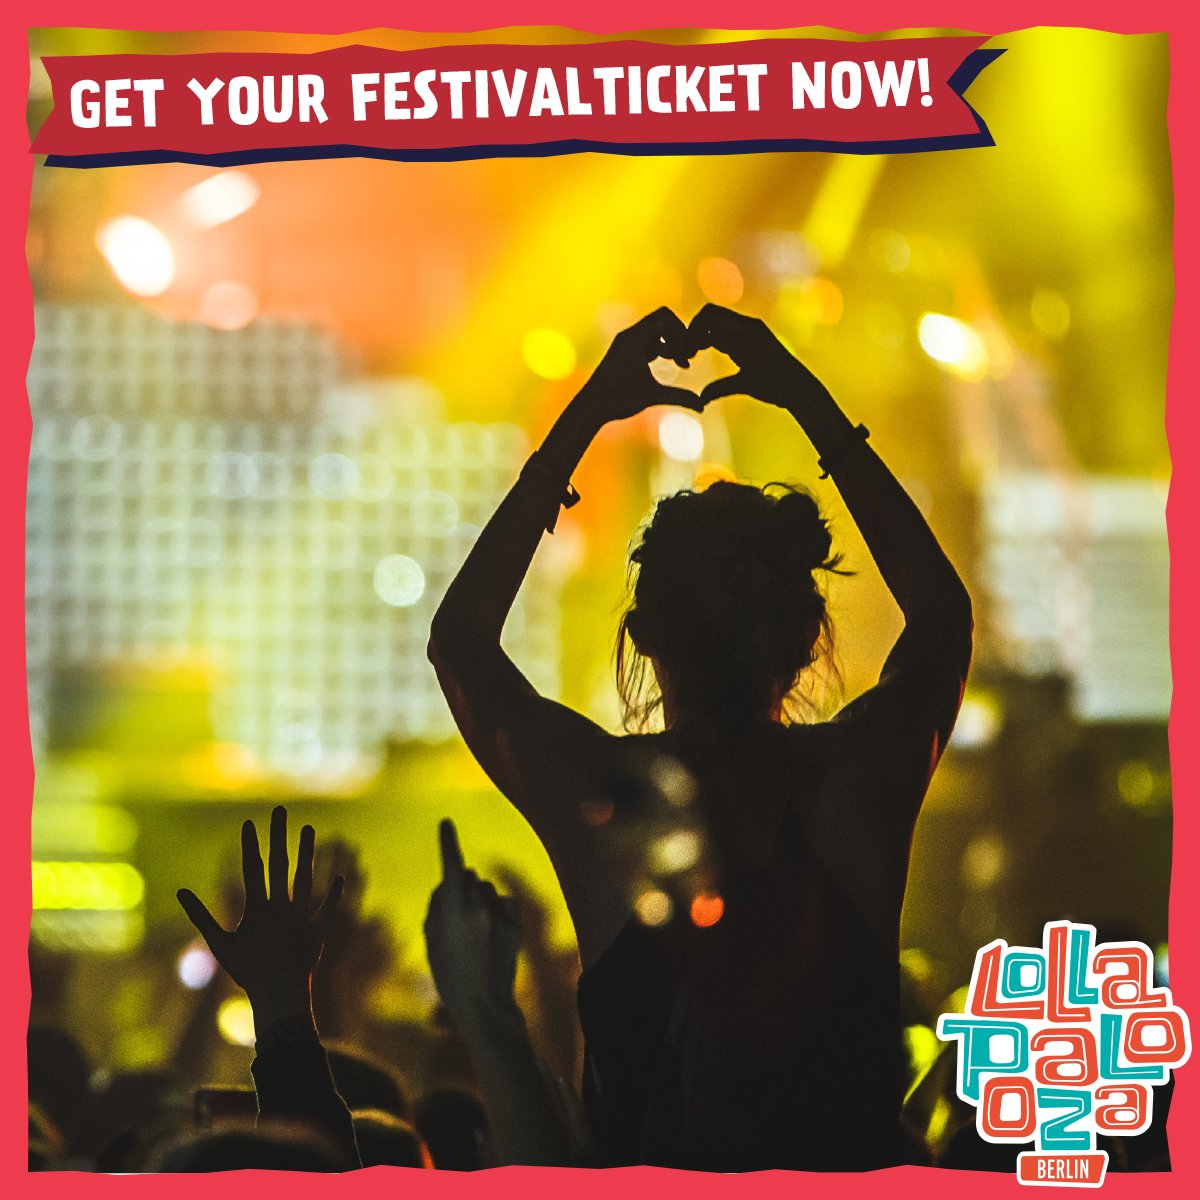 Sunday Passes sold out!  Get your Festival and Saturday Passes for #lollaberlin now  https://t.co/r8KlUQvQ3e https://t.co/yqnvb78BeN